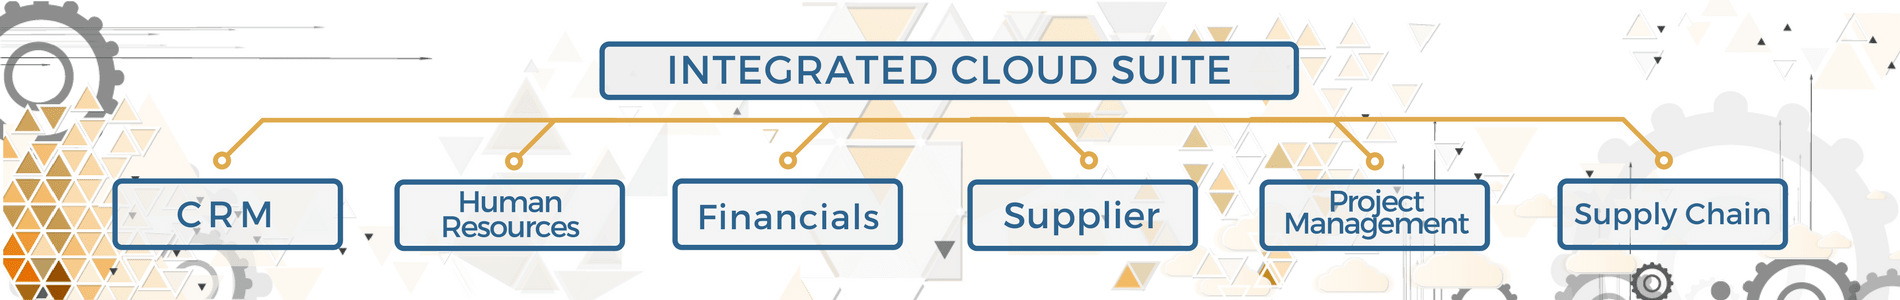 Integrated Cloud Suite